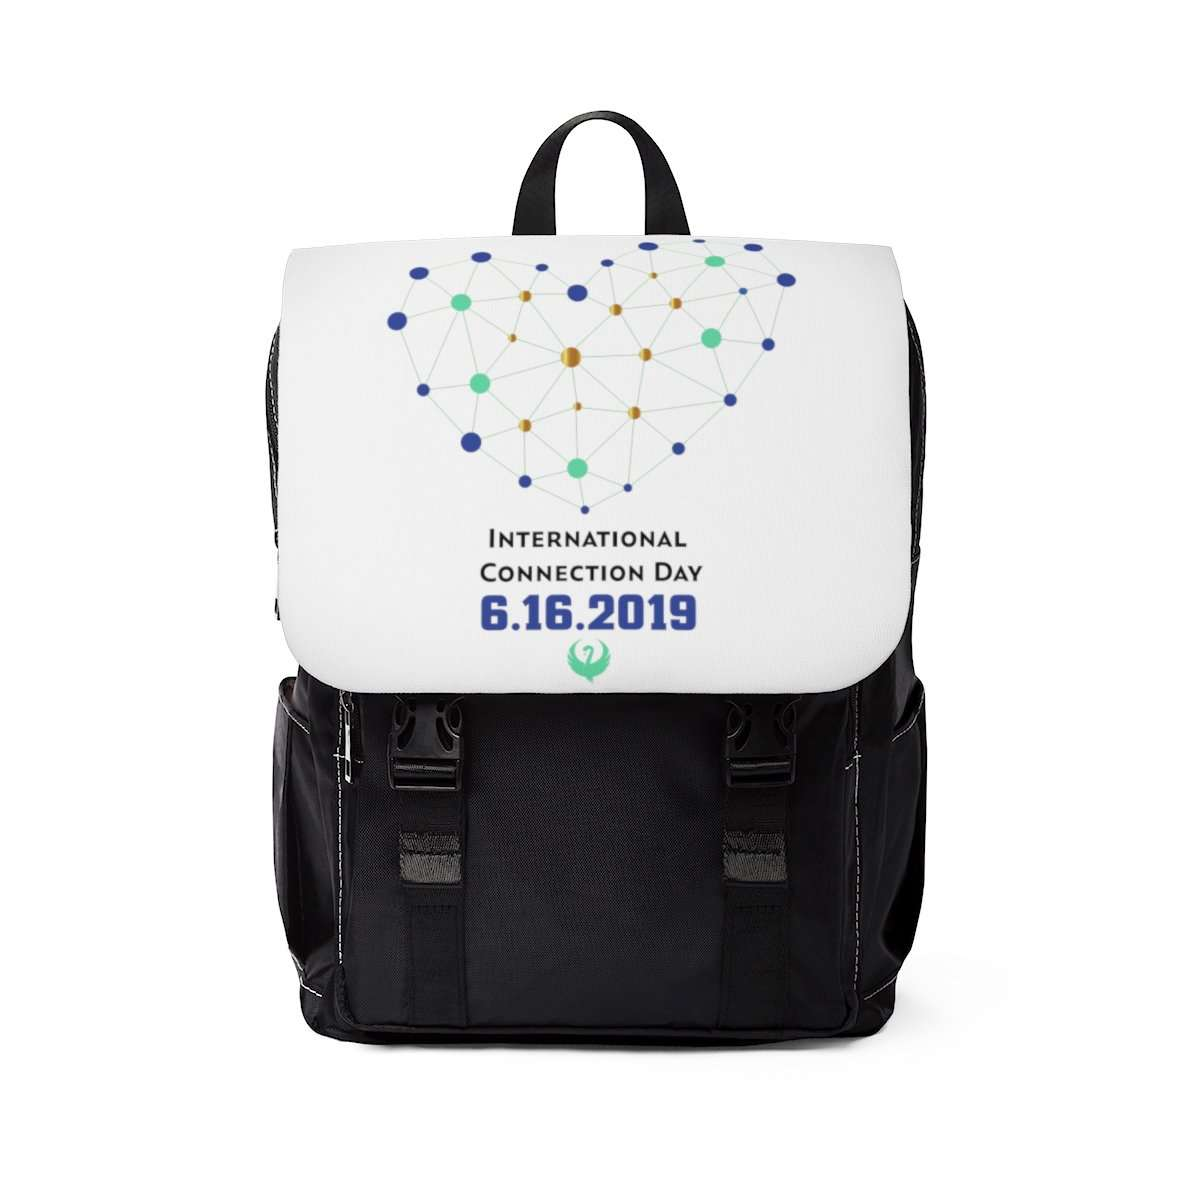 International Connection Day 2019 - Unisex Casual Shoulder Backpack